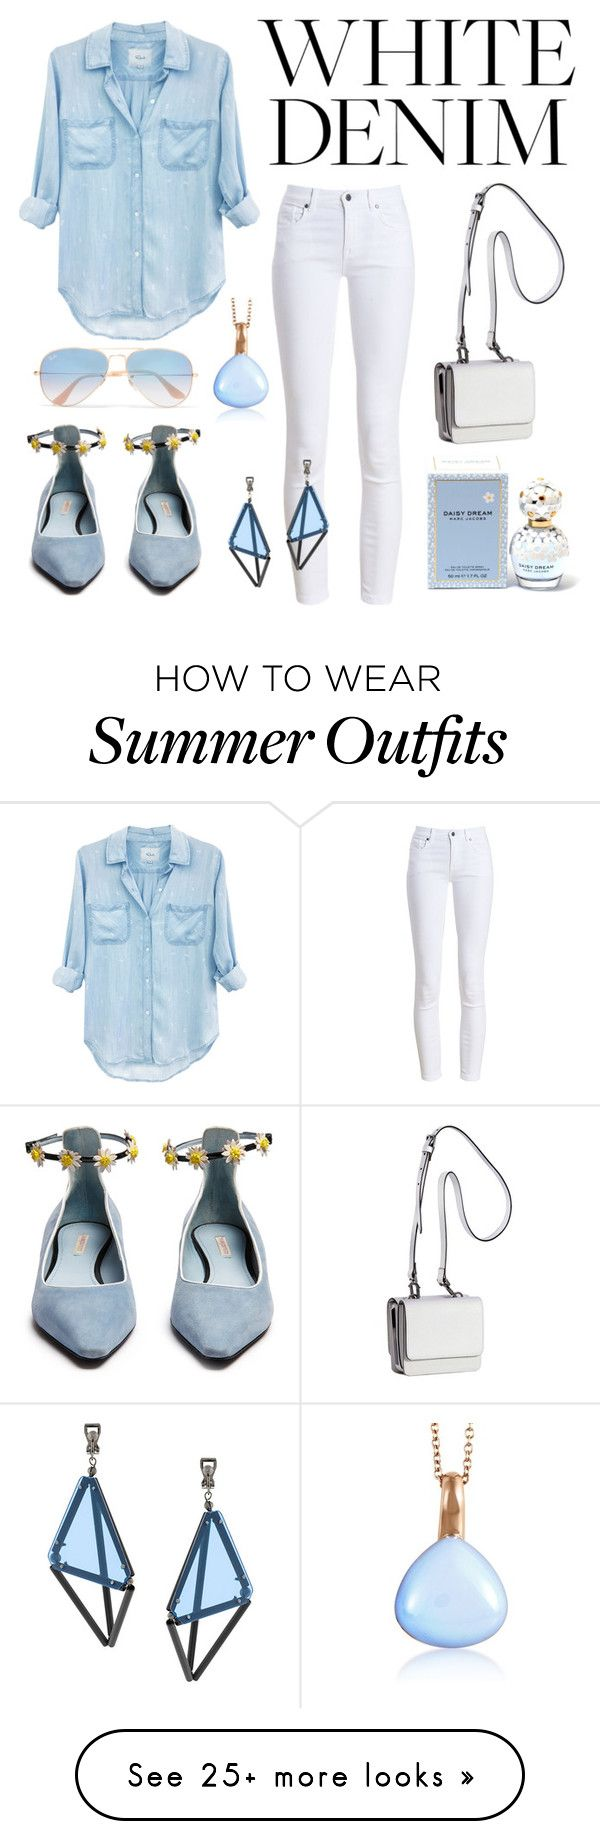 """""""You Look Fresh"""" by cstarzforhome on Polyvore featuring Rails, Barbour, Kendall + Kylie, Fabrizio Viti, Marc Jacobs, Ray-Ban, Bucherer and Issey Miyake"""